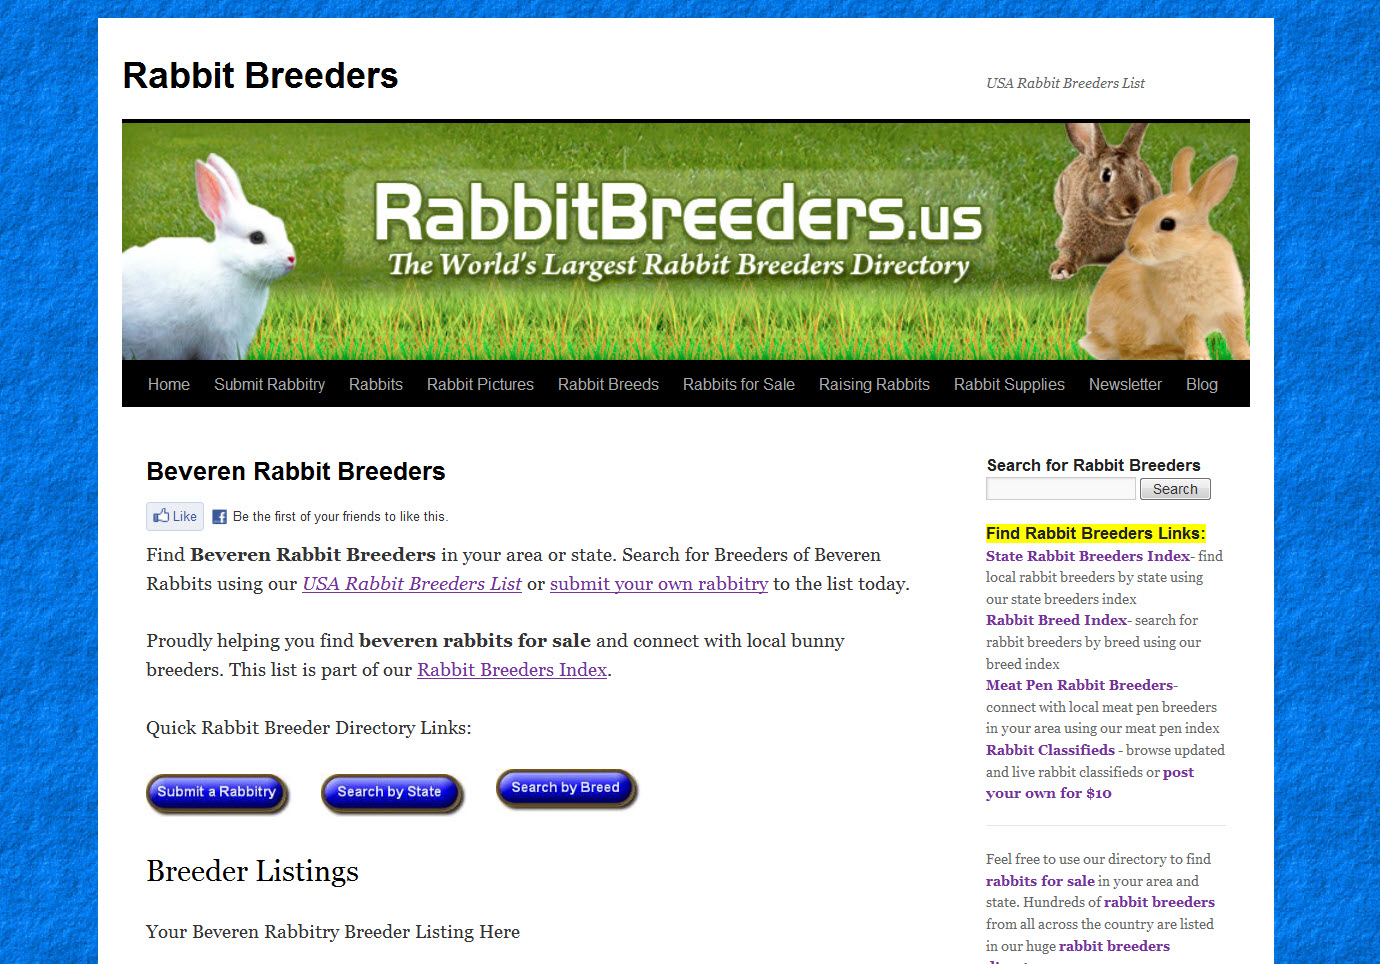 Beveren Rabbit Breeders